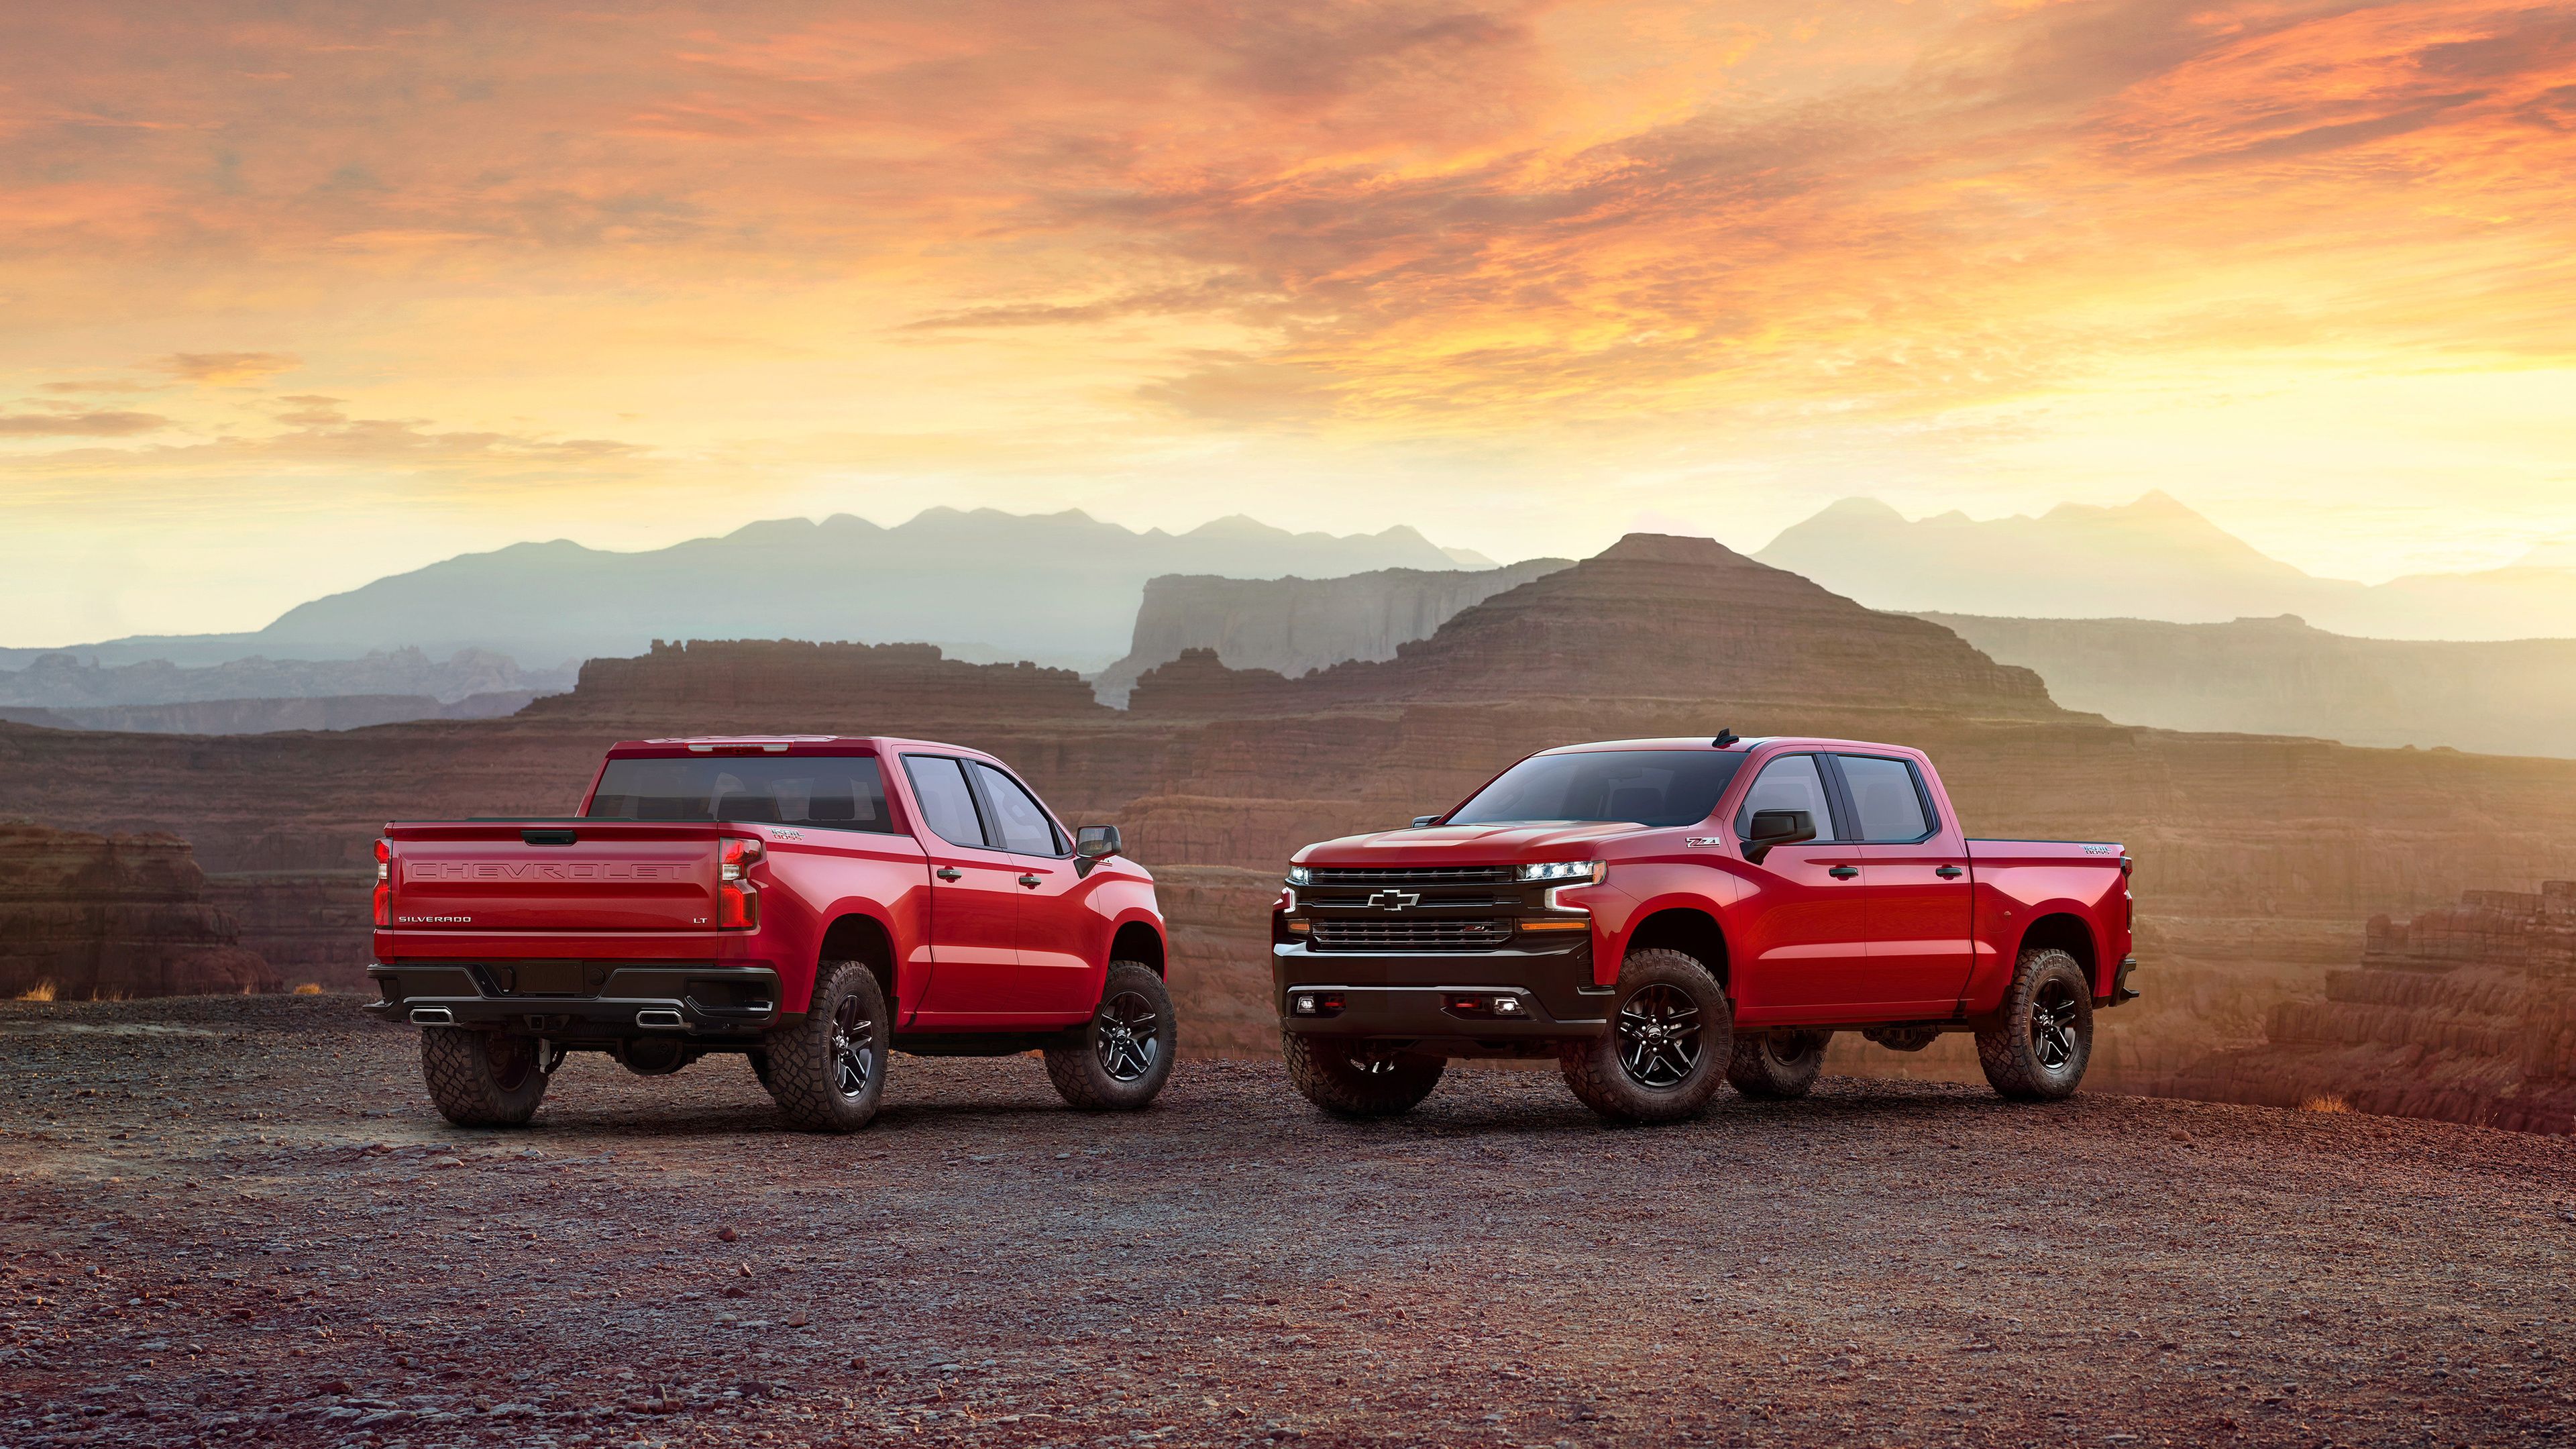 2019 chevrolet silverado lt z71 1539108861 - 2019 Chevrolet Silverado LT Z71 - hd-wallpapers, chevrolet wallpapers, chevrolet silverado wallpapers, 4k-wallpapers, 2019 cars wallpapers